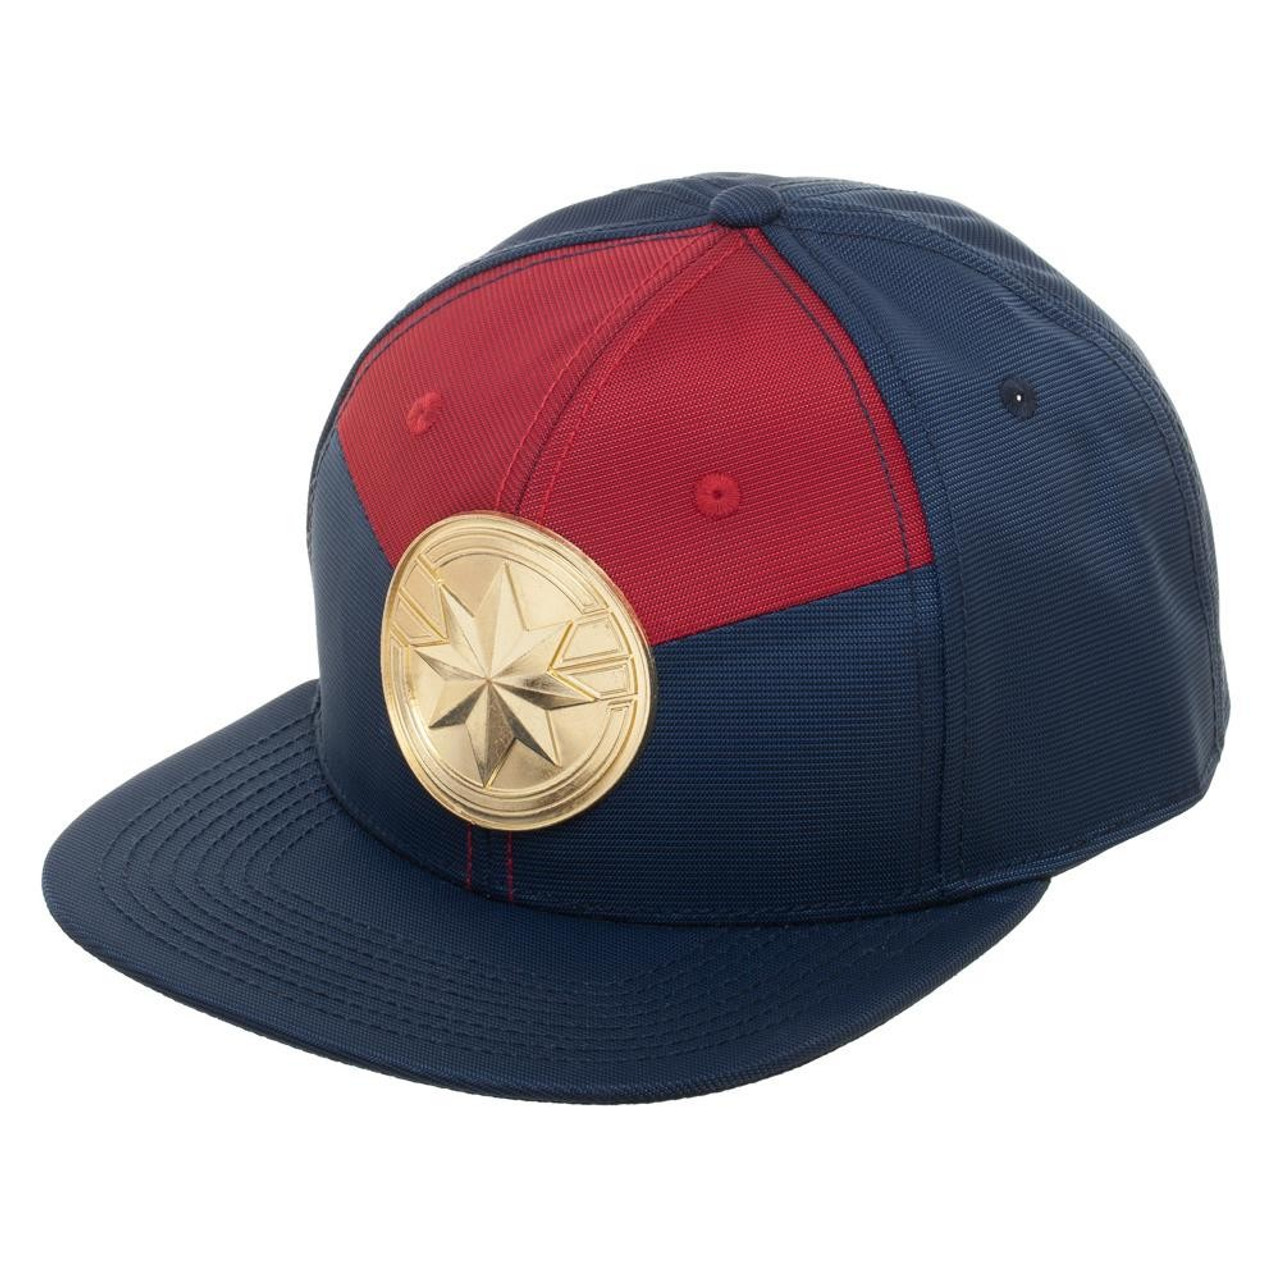 Captain Marvel Captain Marvel Suit Up Snapback Cap Bioworld LD - ToyWiz db762689a11c